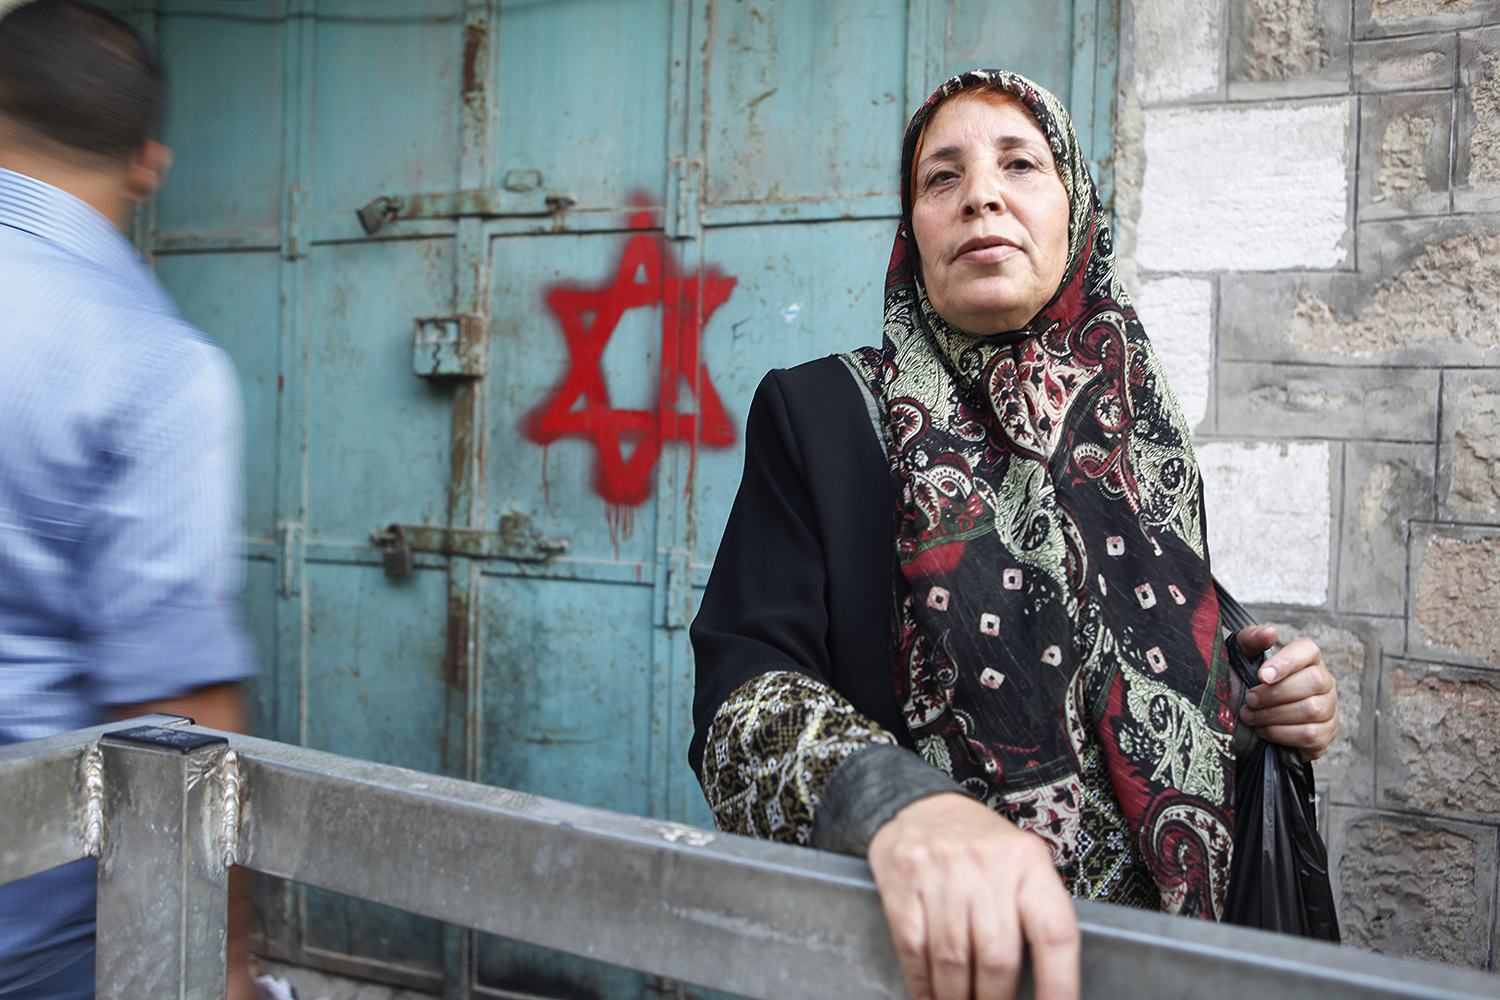 6 A Palastinian woman stands by a building in Herbron, which has been marked with the Jewish cross to sybolise Jewish ownership, West Bank .jpg